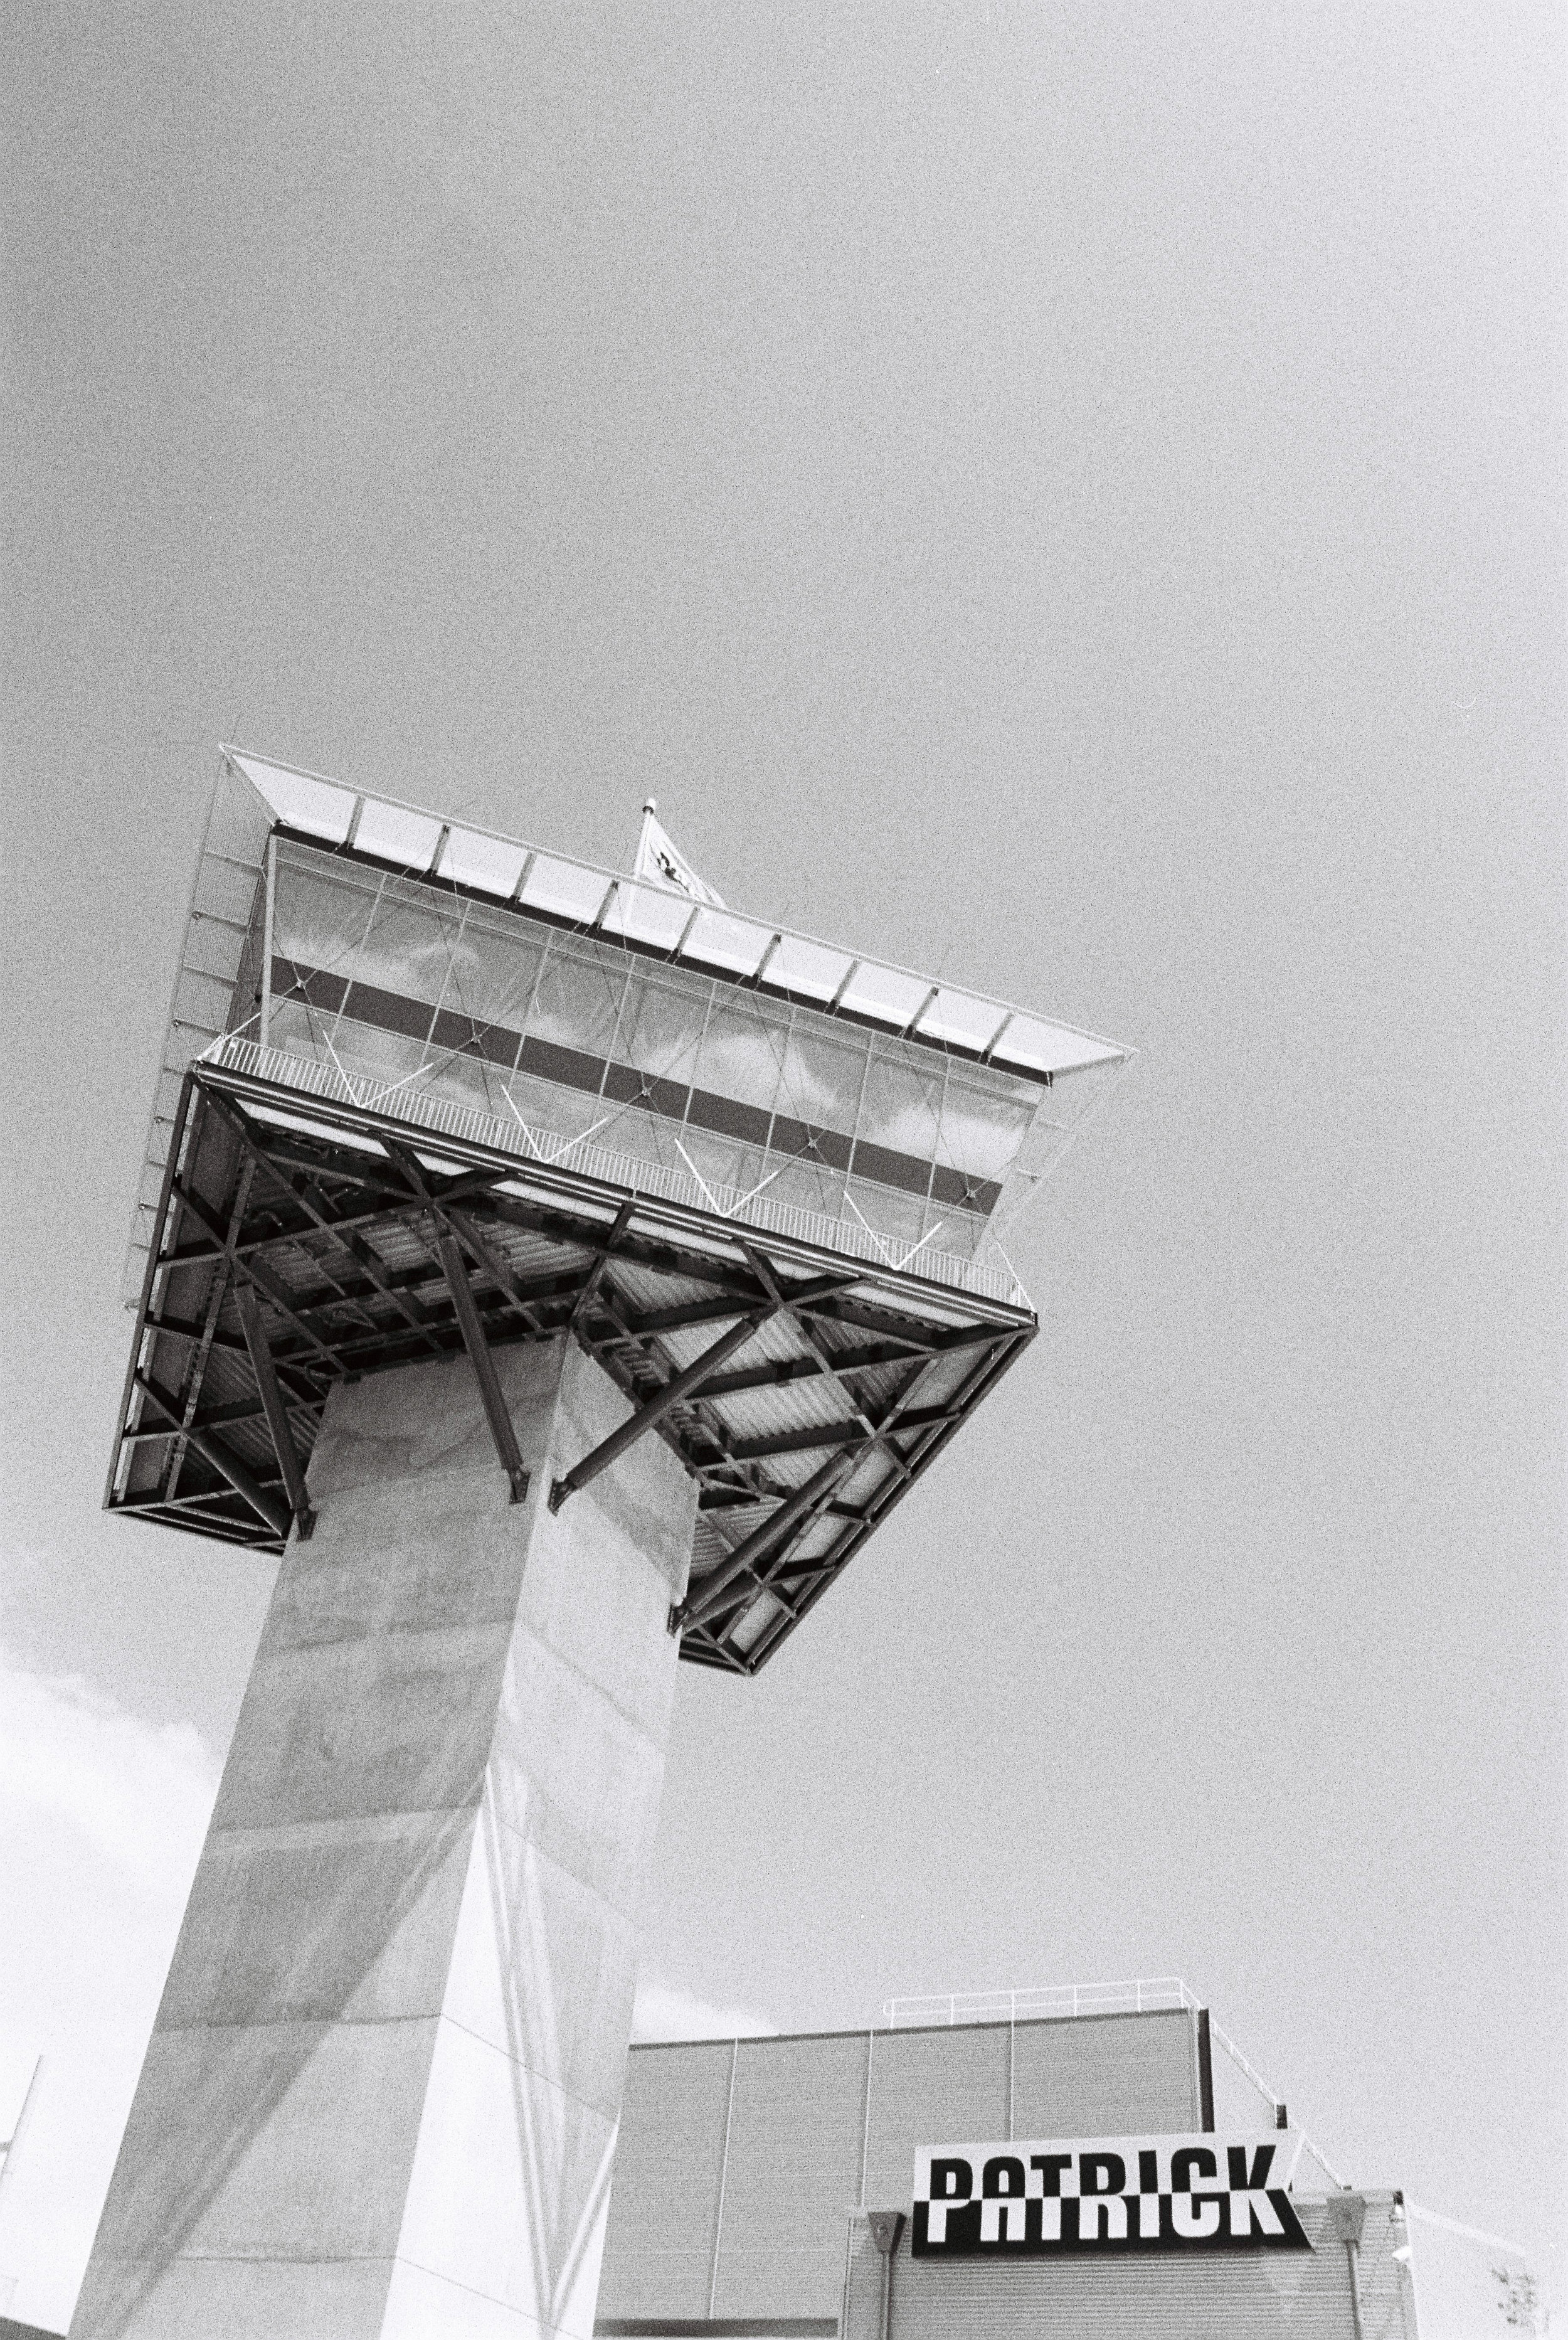 Patrick Wharf Brisbane on Tri-x 400. Nice wide feature shot of the Control Tower.